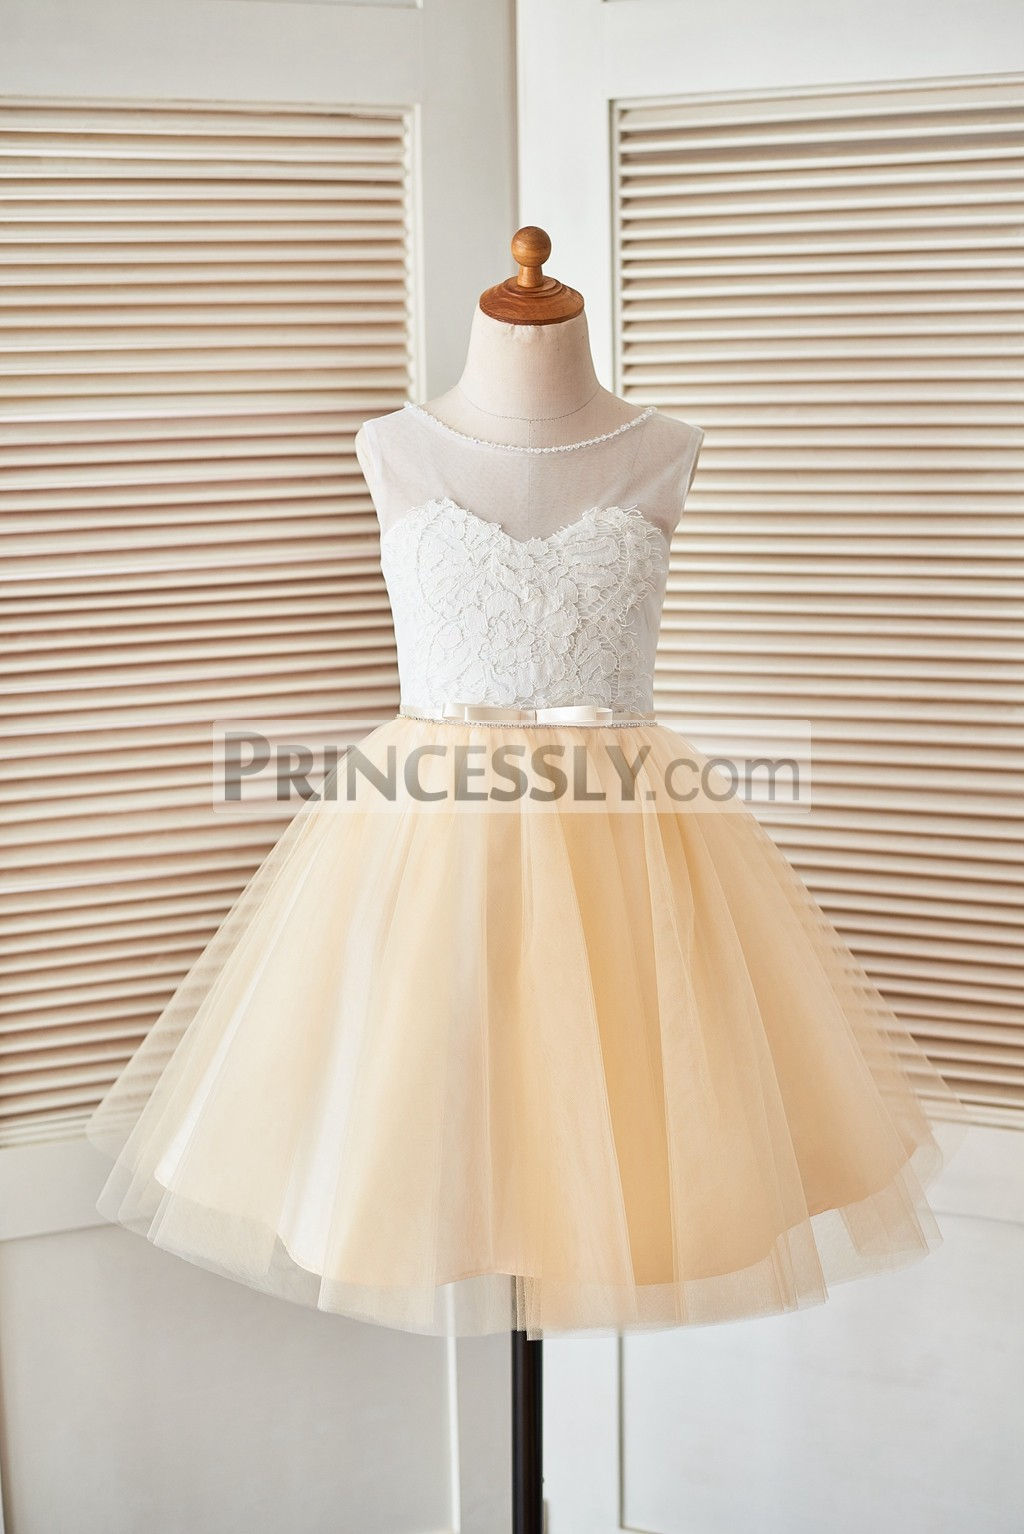 Sheer Ivory Lace Champagne Tulle Flower Girl Dress with ...